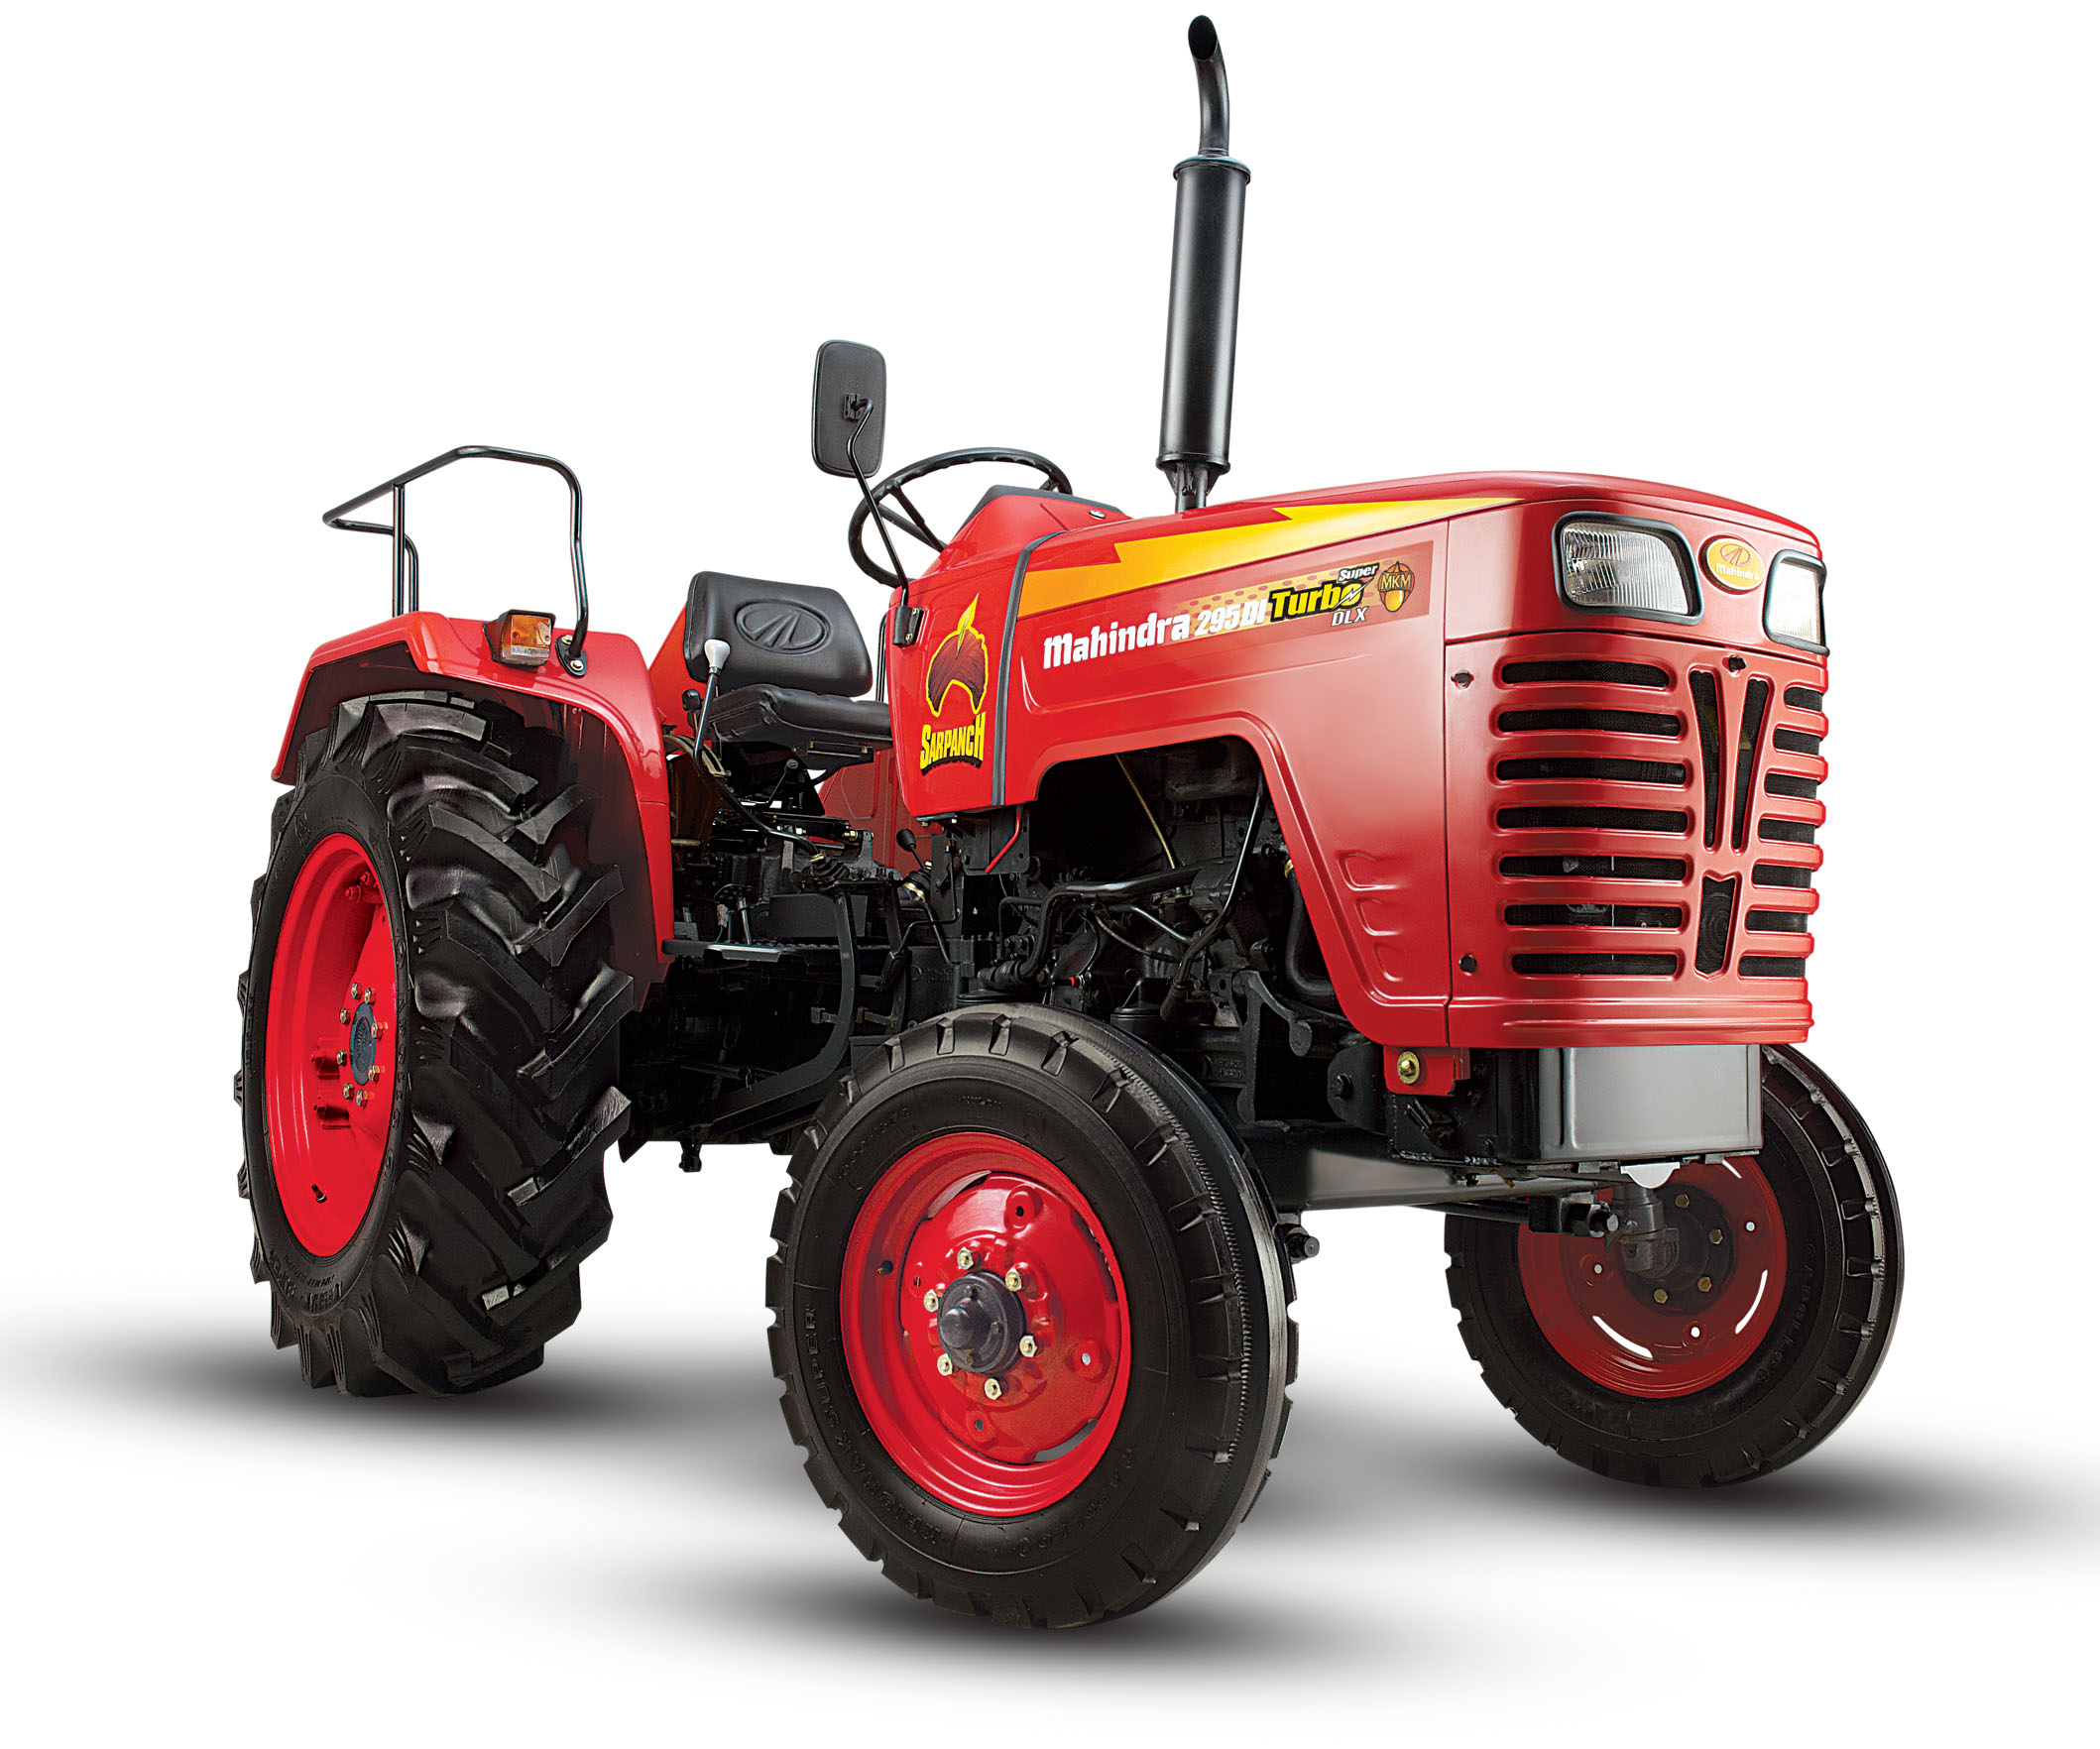 Done Deal Tractor >> Kubota Tractor Packages Related Keywords - Kubota Tractor Packages Long Tail Keywords KeywordsKing